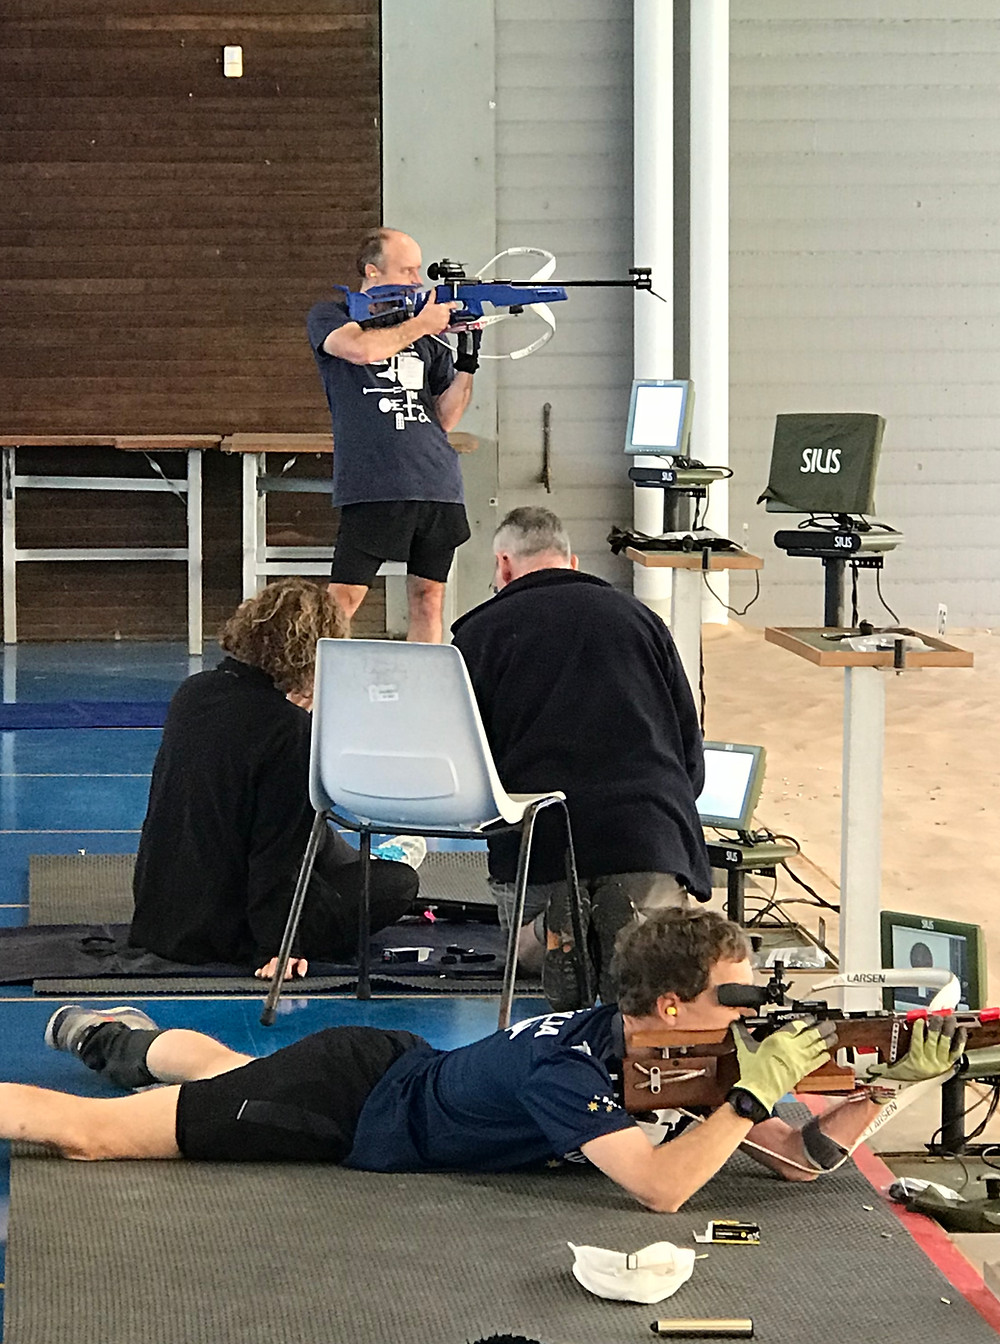 Practising shooting from a standing position (background). Prone position (foreground)